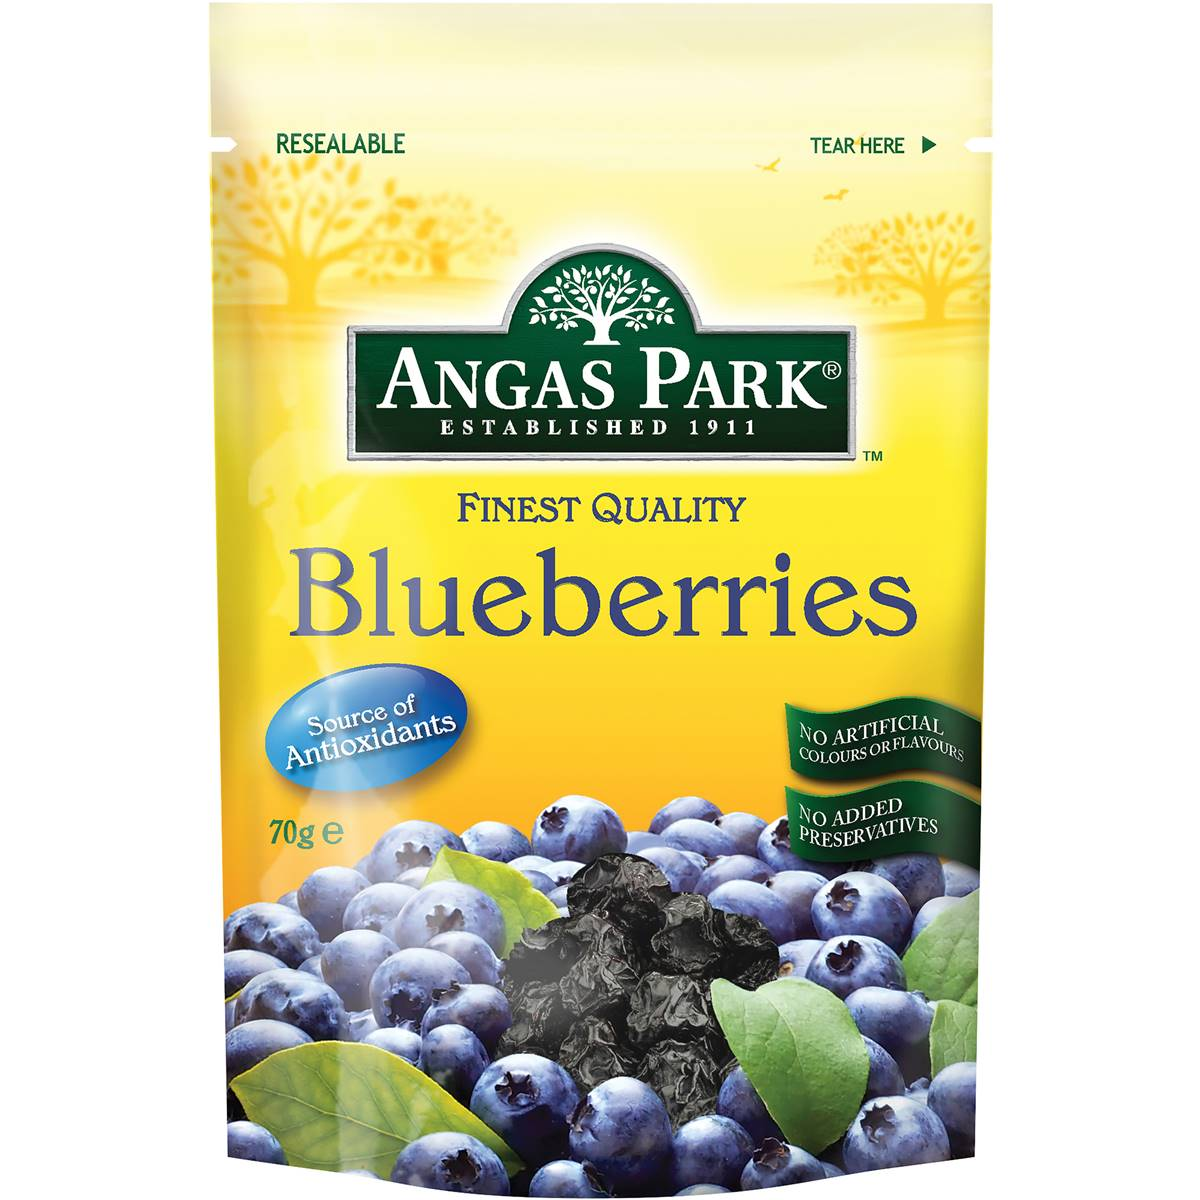 Angas Park Blueberries